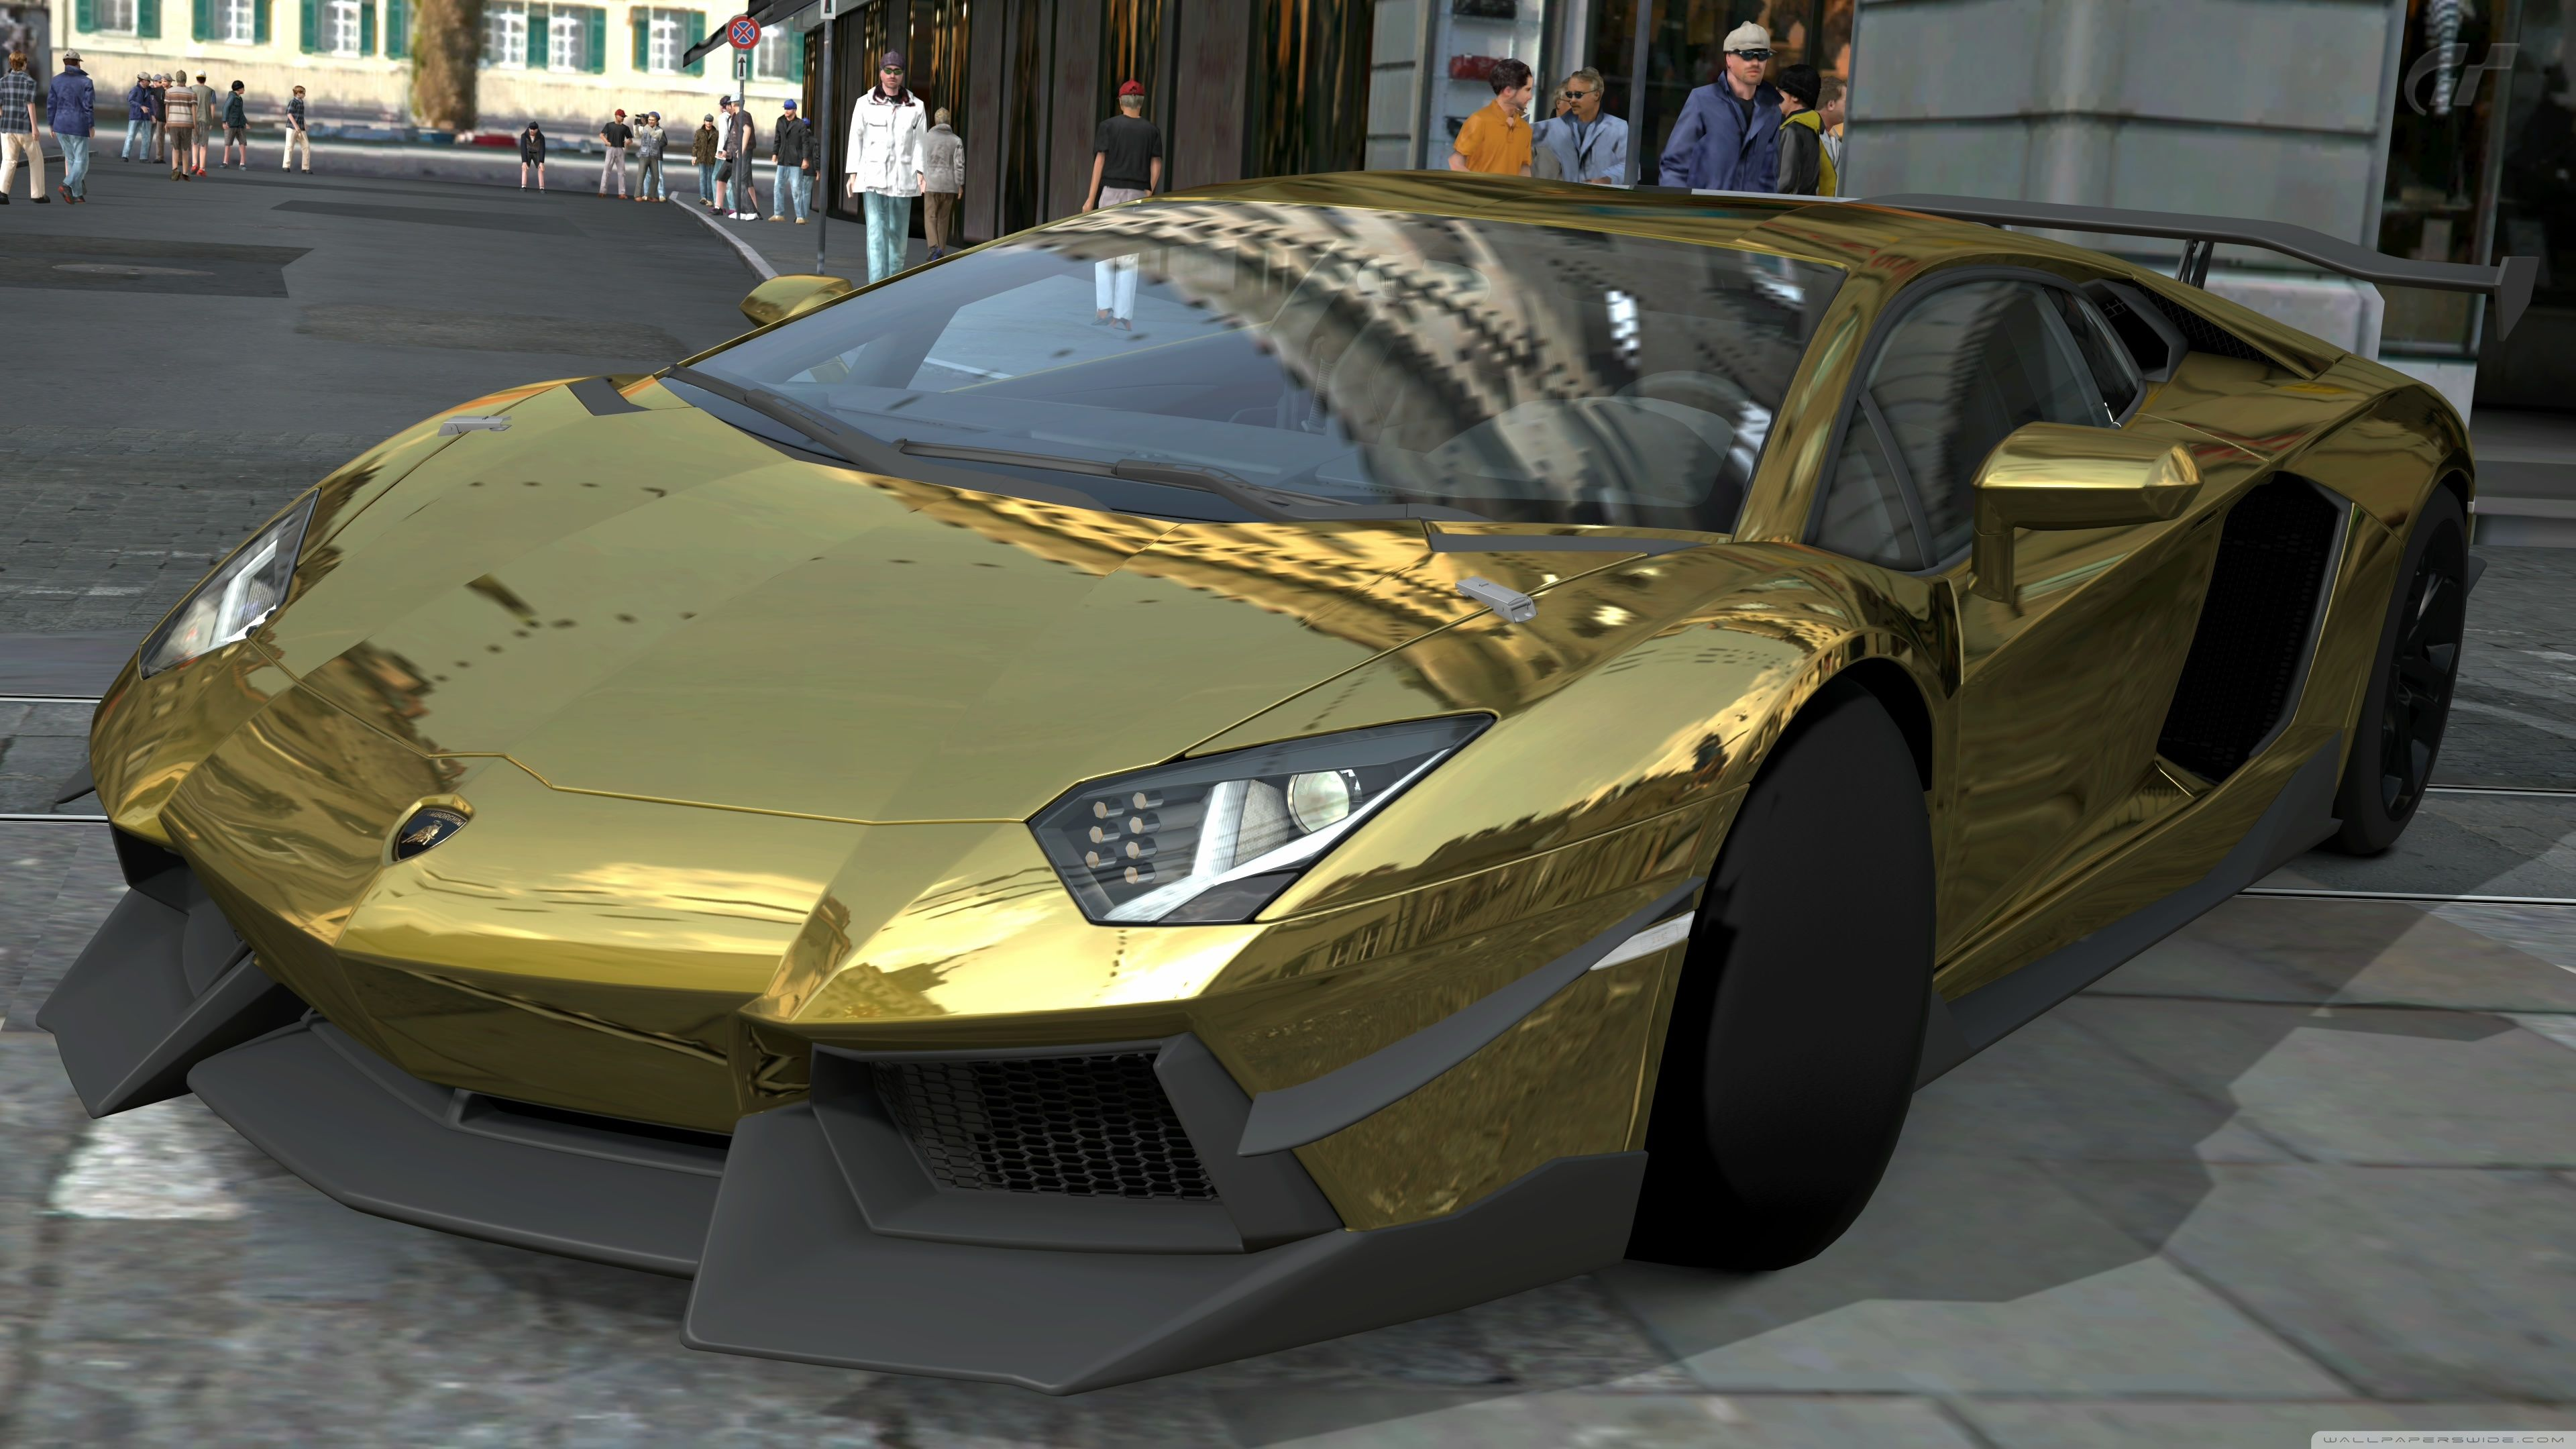 52 Best Free Gold Lamborghini Wallpapers Wallpaperaccess